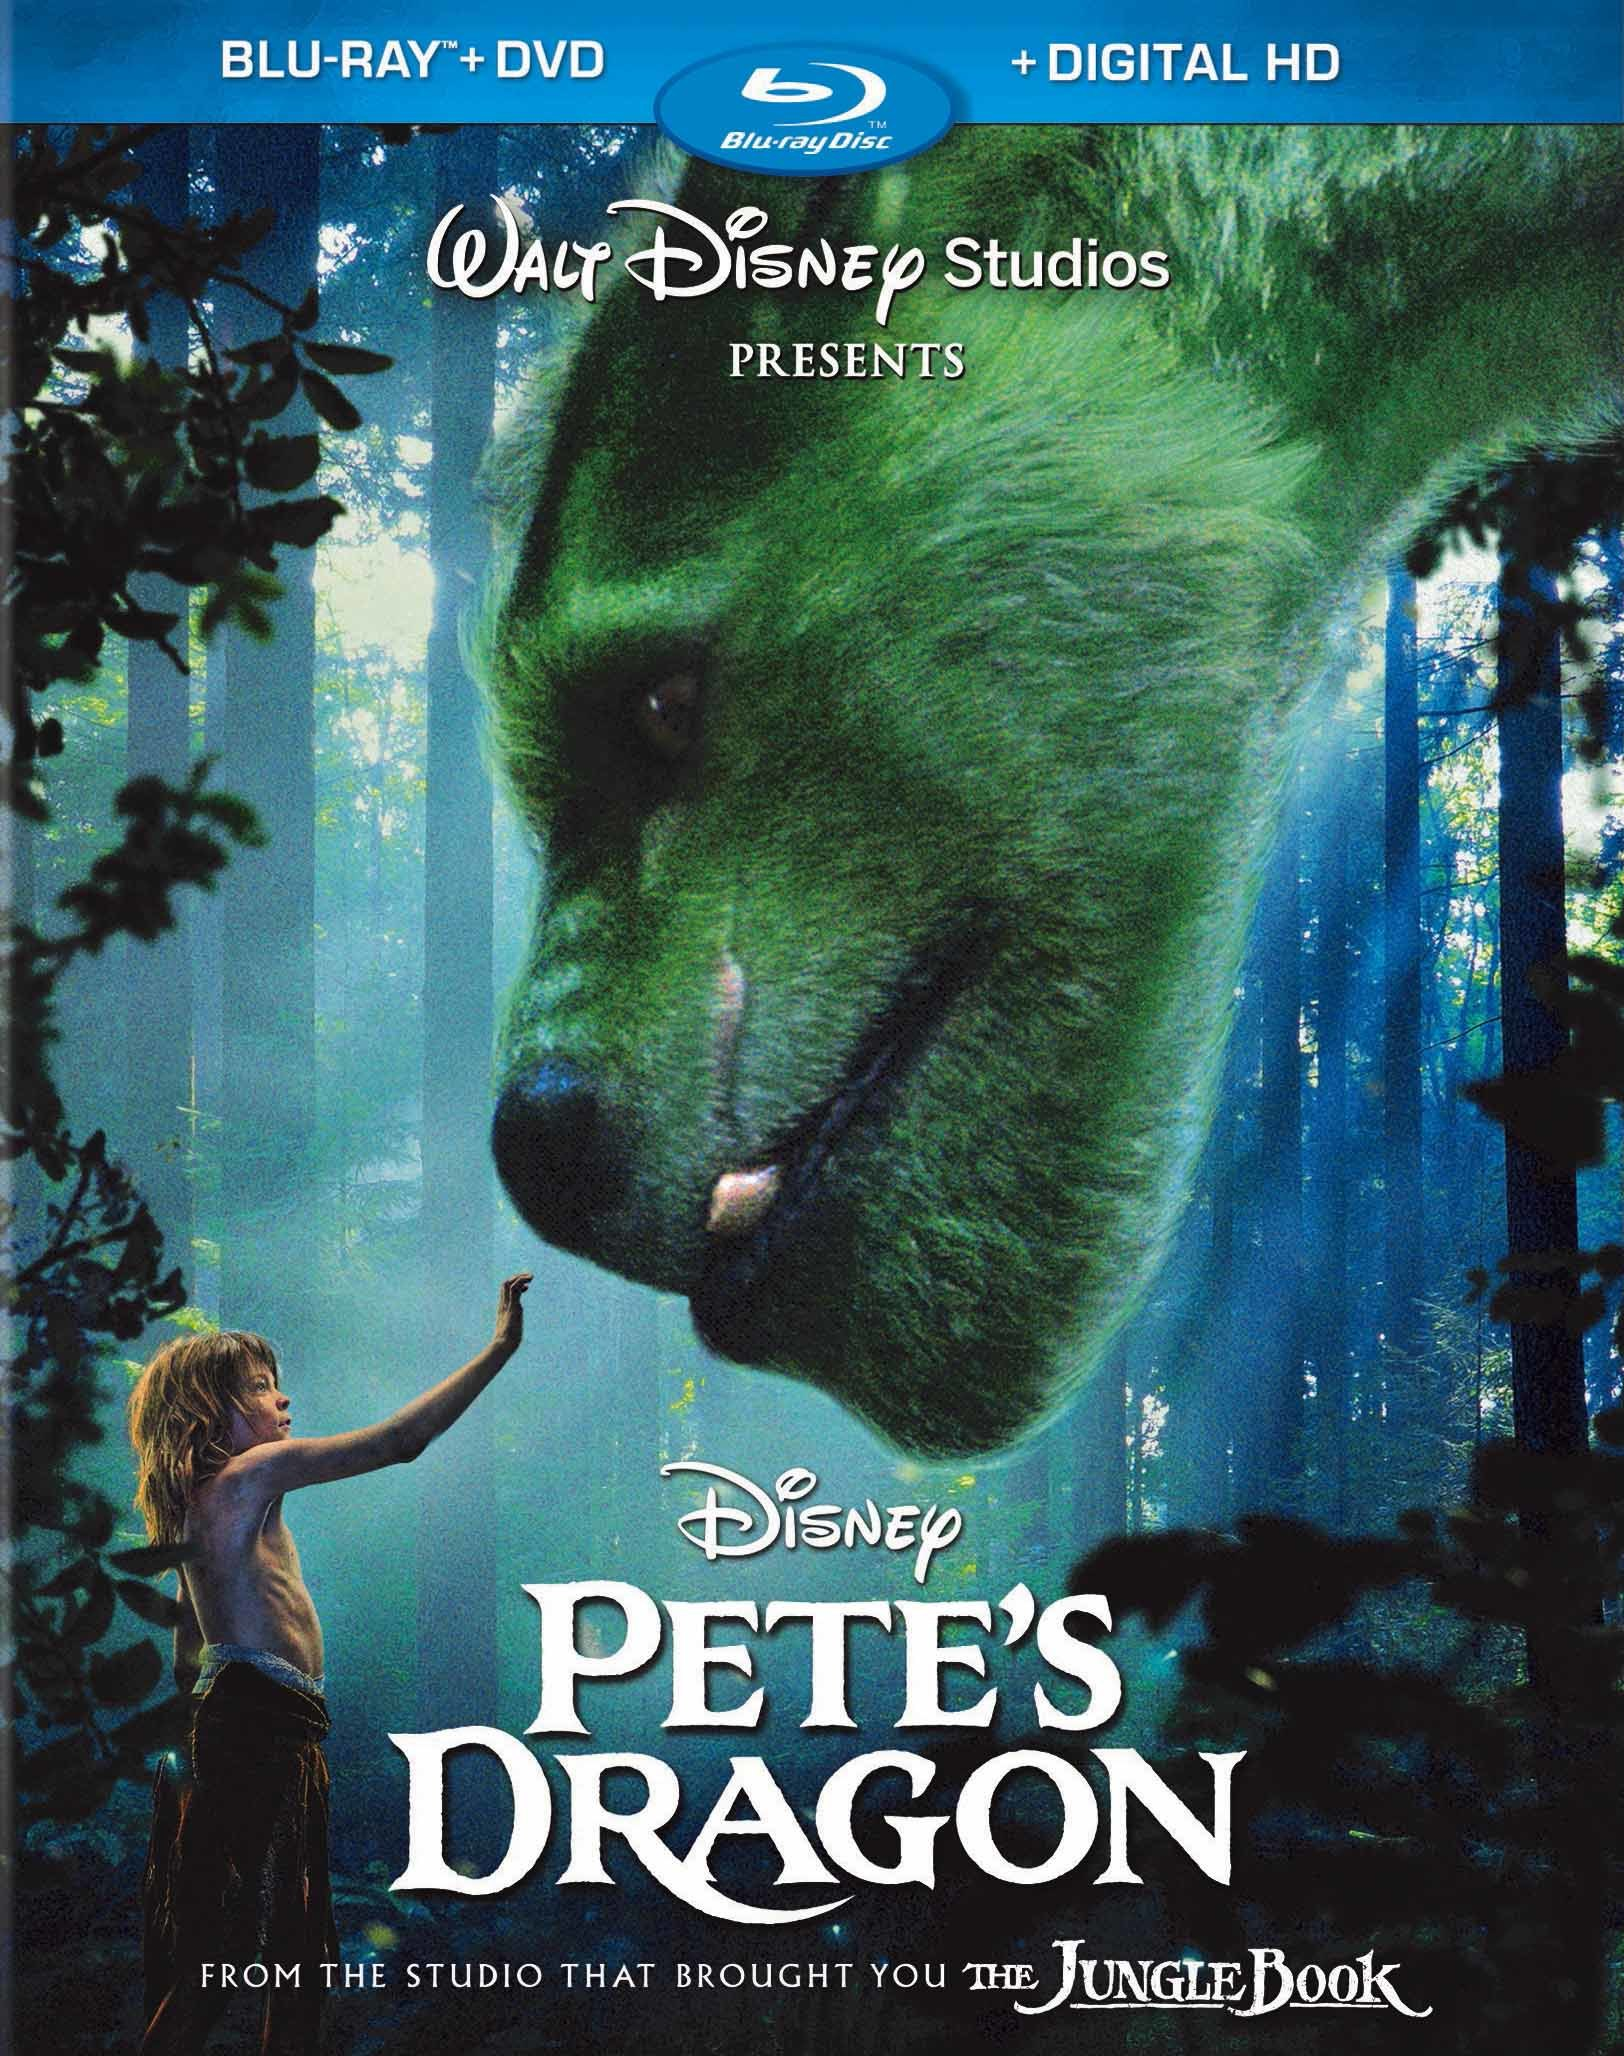 Pete's Dragon poster image